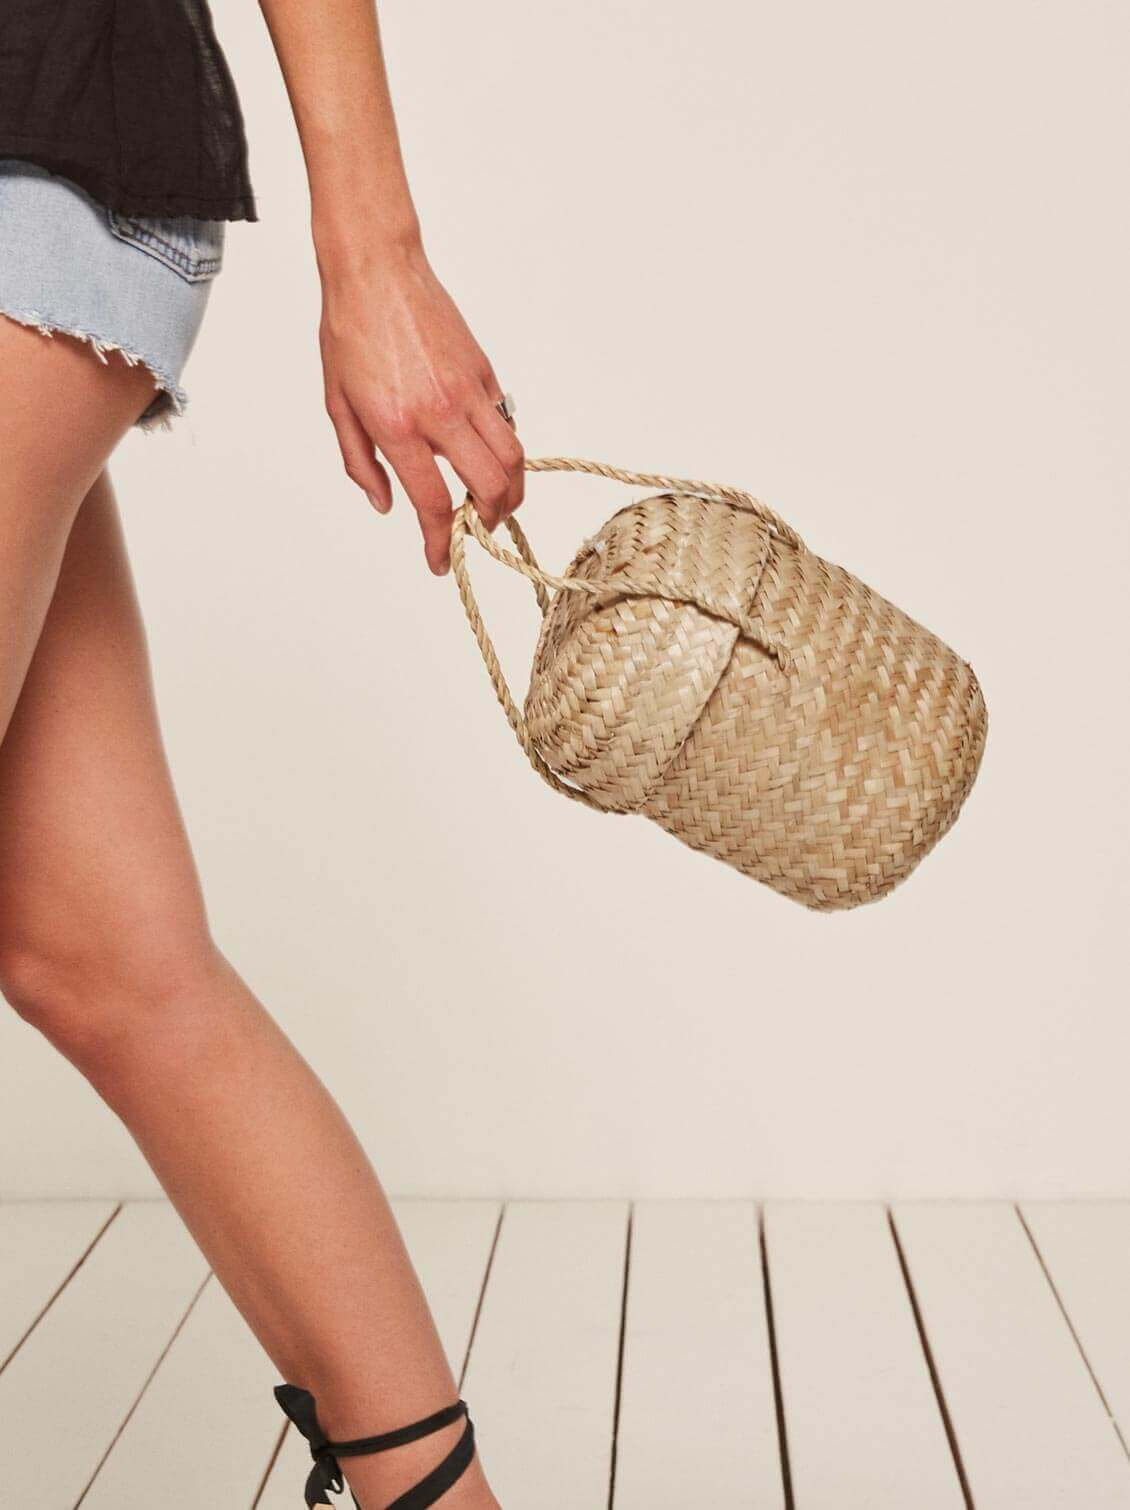 Reformation straw bag, similar to Jane Birkin's